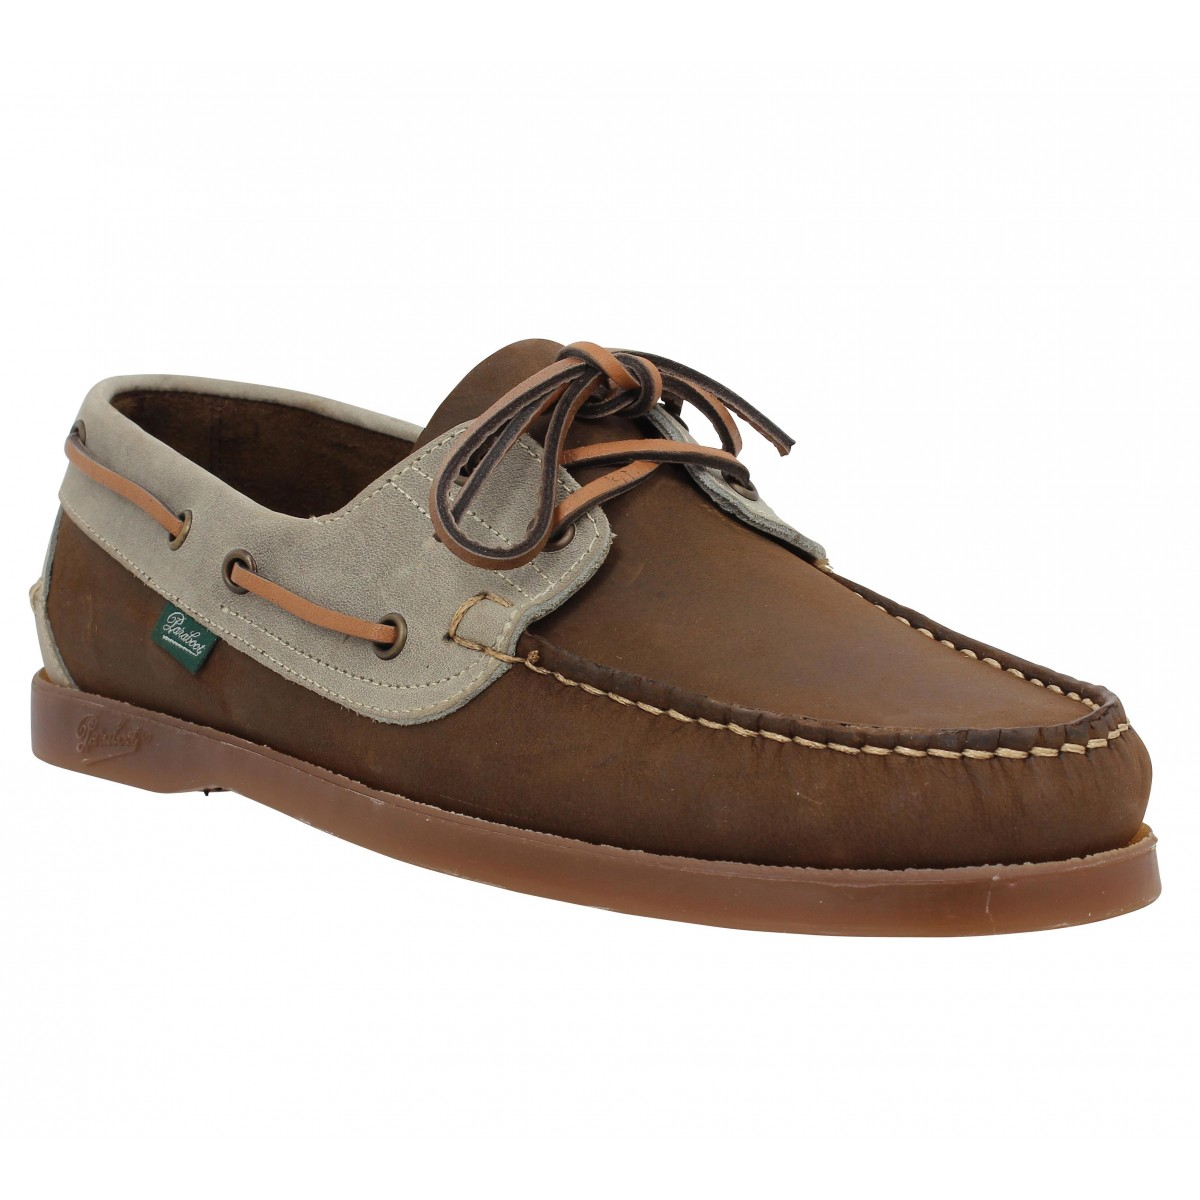 Paraboot Barth Velours Homme Marron Gris Fanny Chaussures